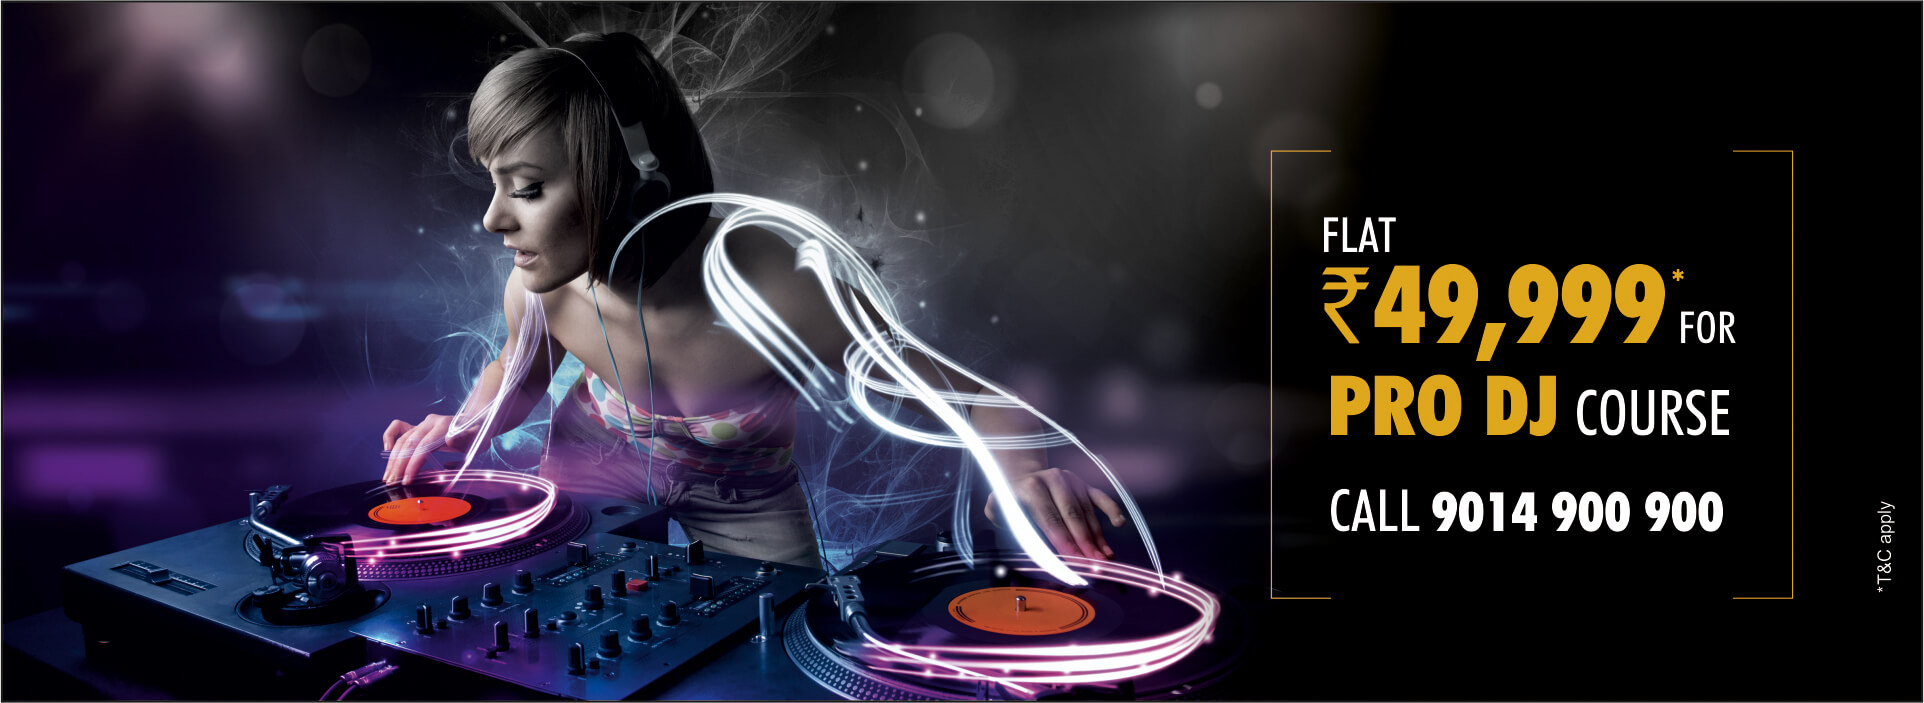 Best Dj Training Courses in Delhi | PATSAV Dj Academy